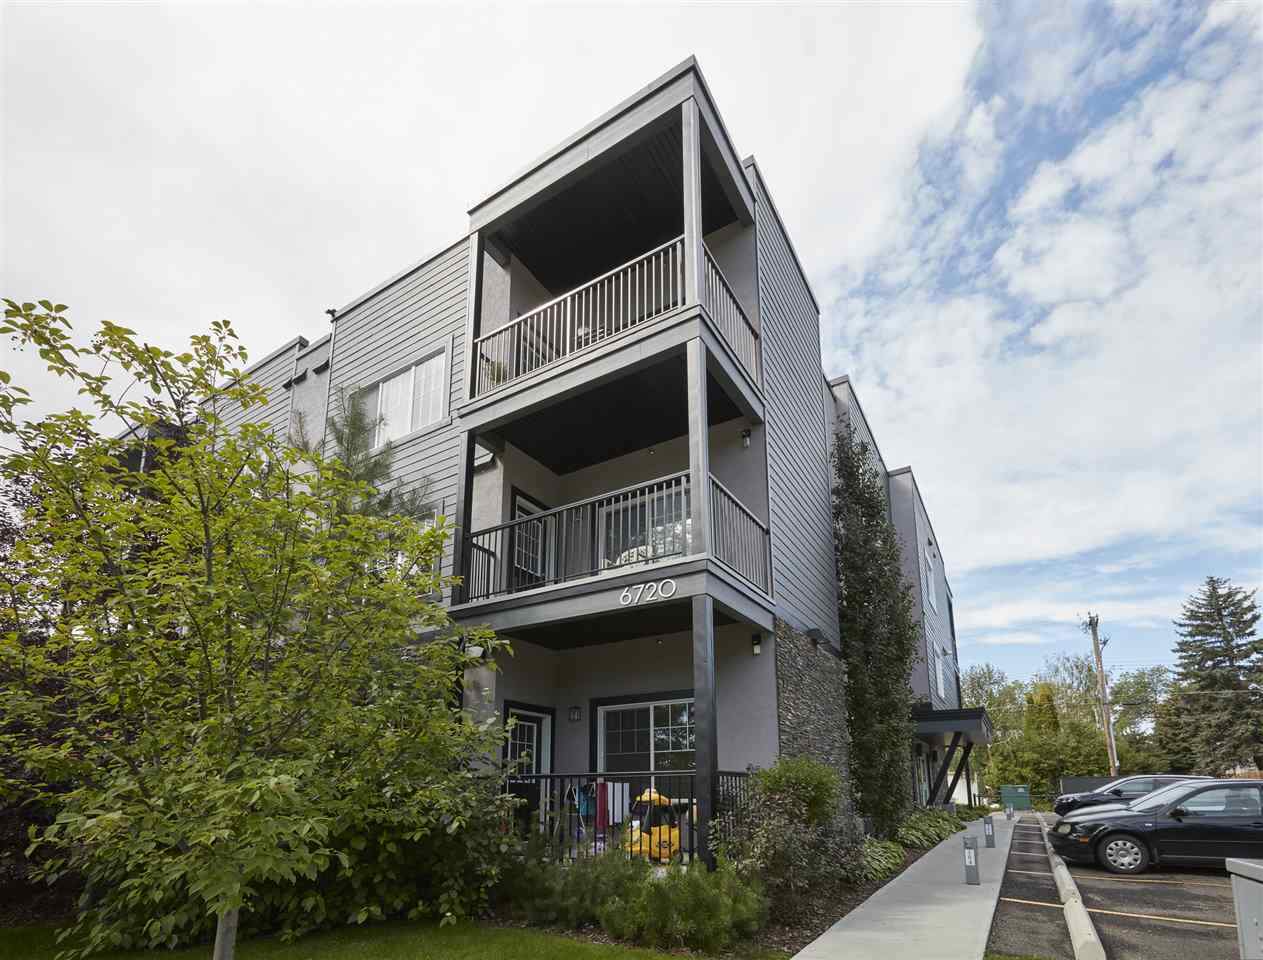 Main Photo: 205 6720 112 Street in Edmonton: Zone 15 Condo for sale : MLS(r) # E4063302